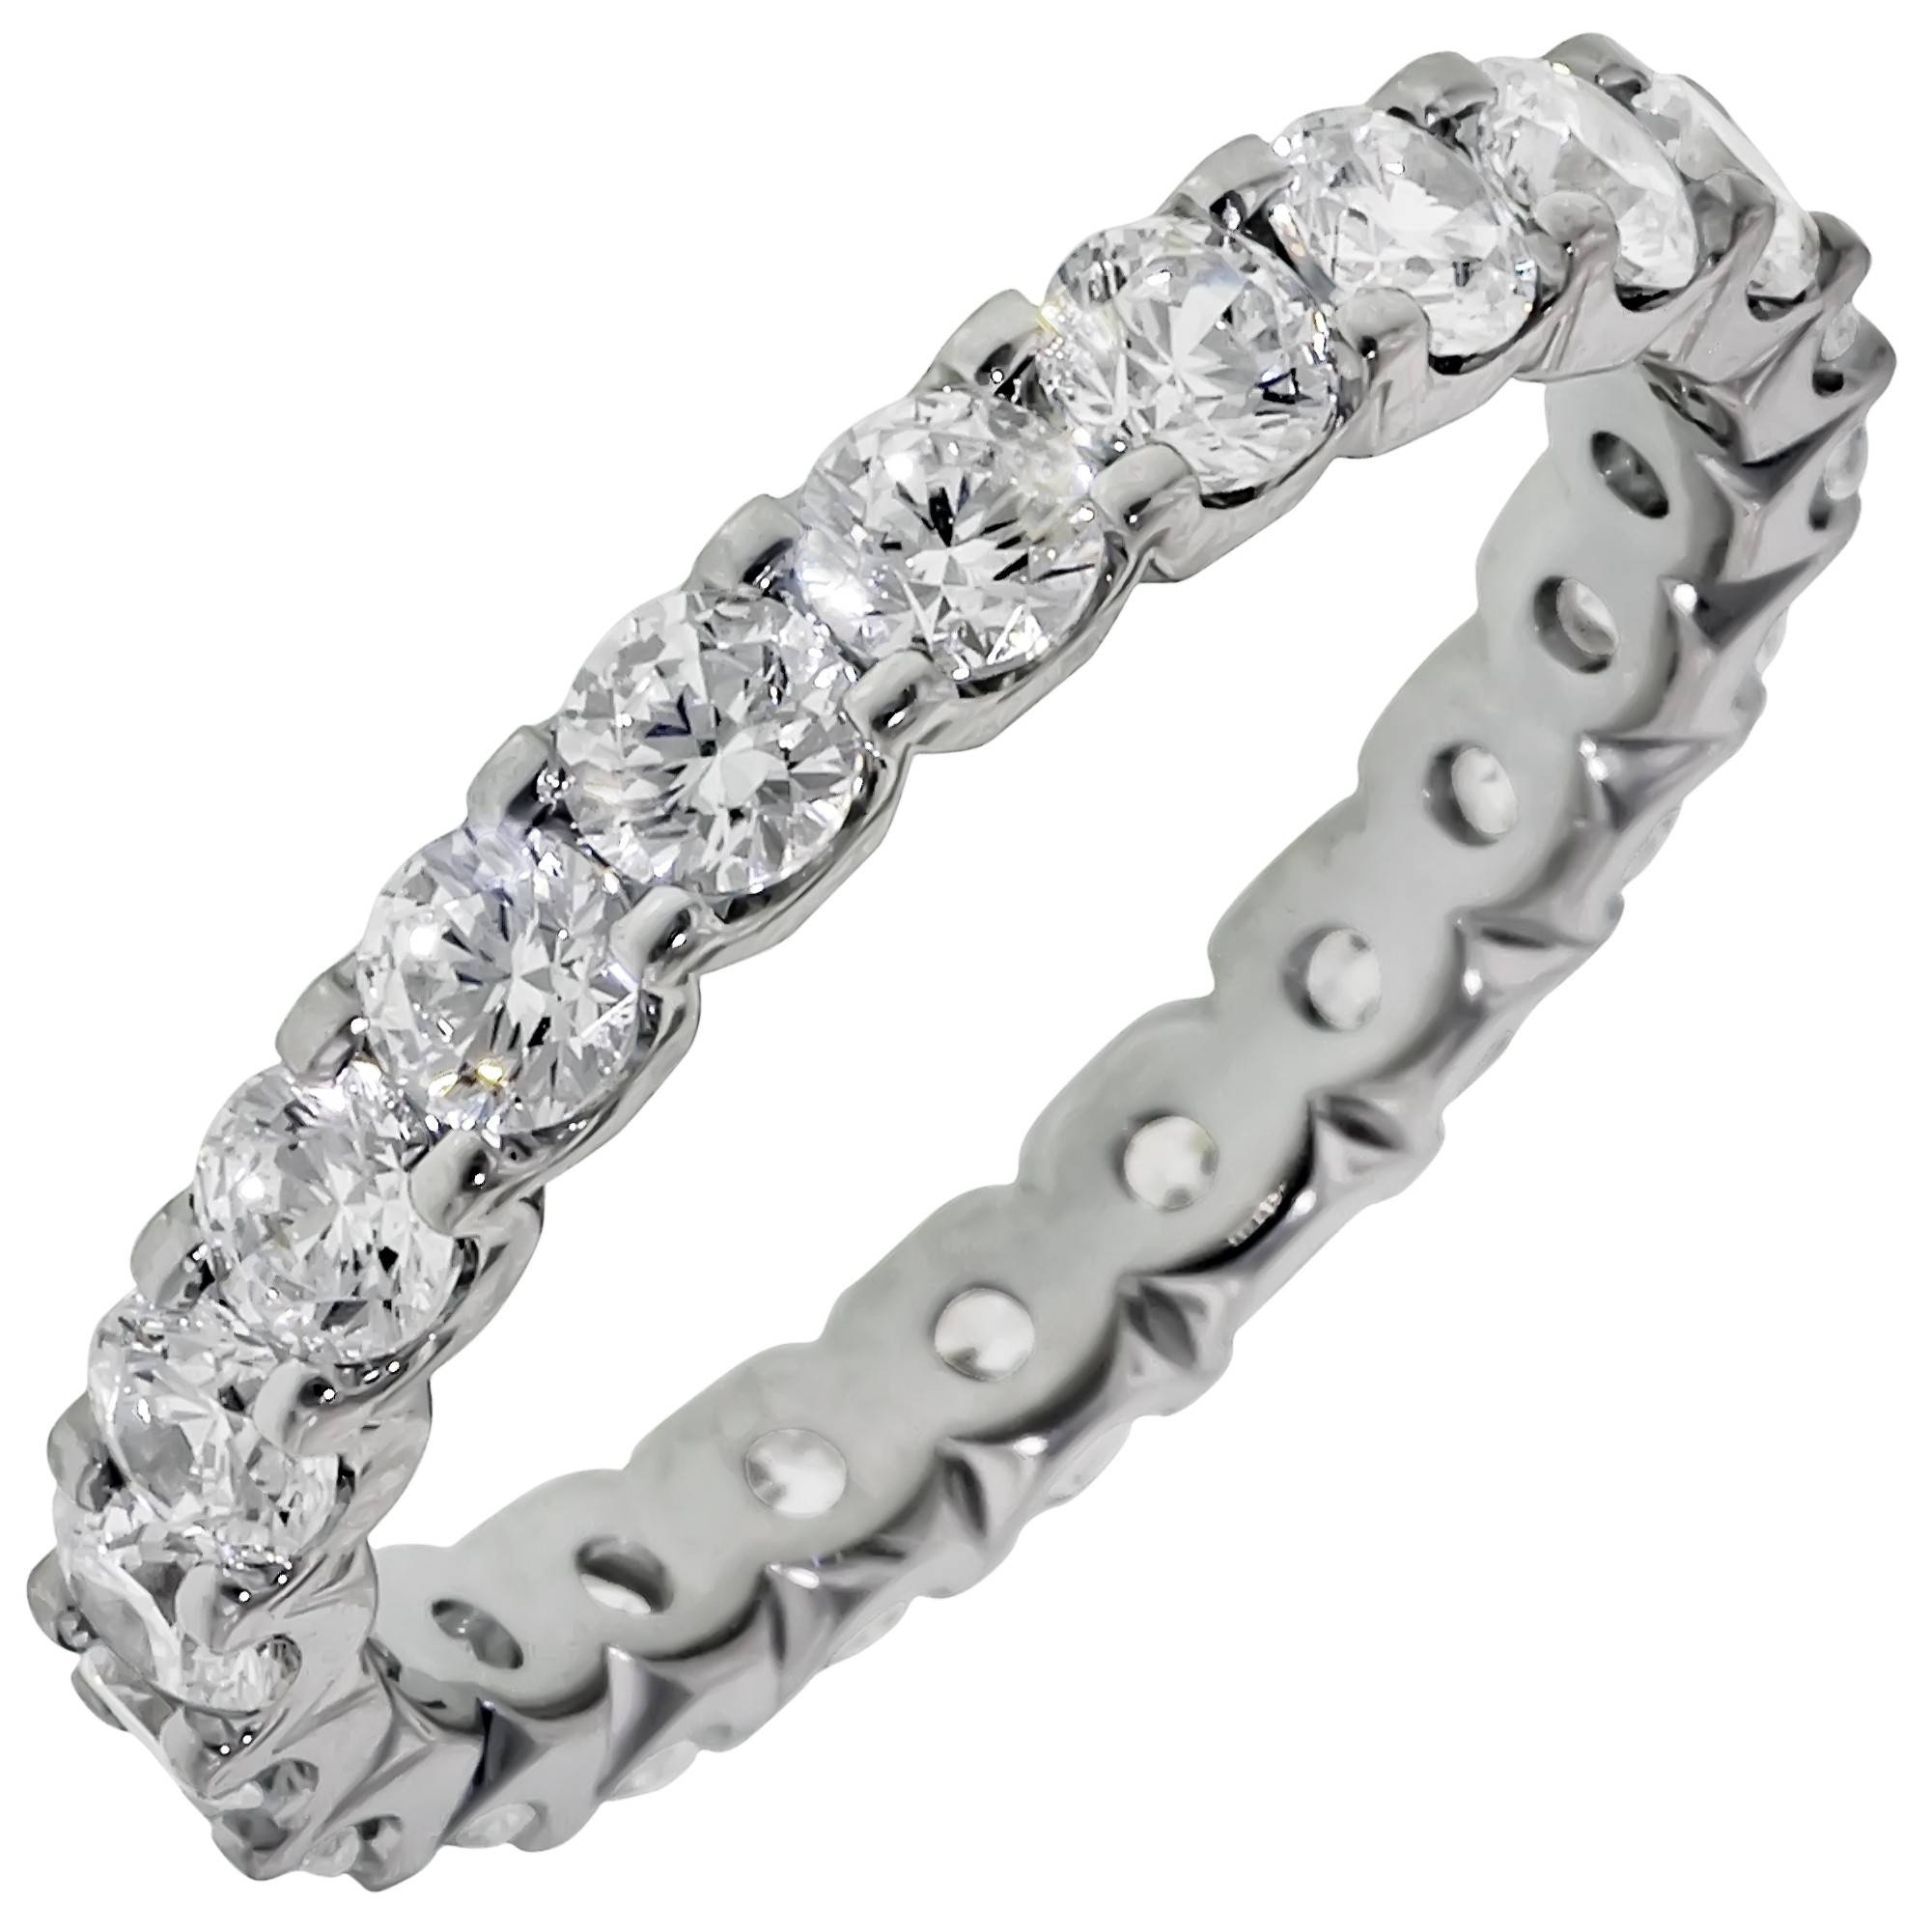 Just Perfect Diamond Eternity Wedding Band In 14kt White Gold (2ct Tw) Throughout Most Popular Platinum Eternity Wedding Bands (View 11 of 15)